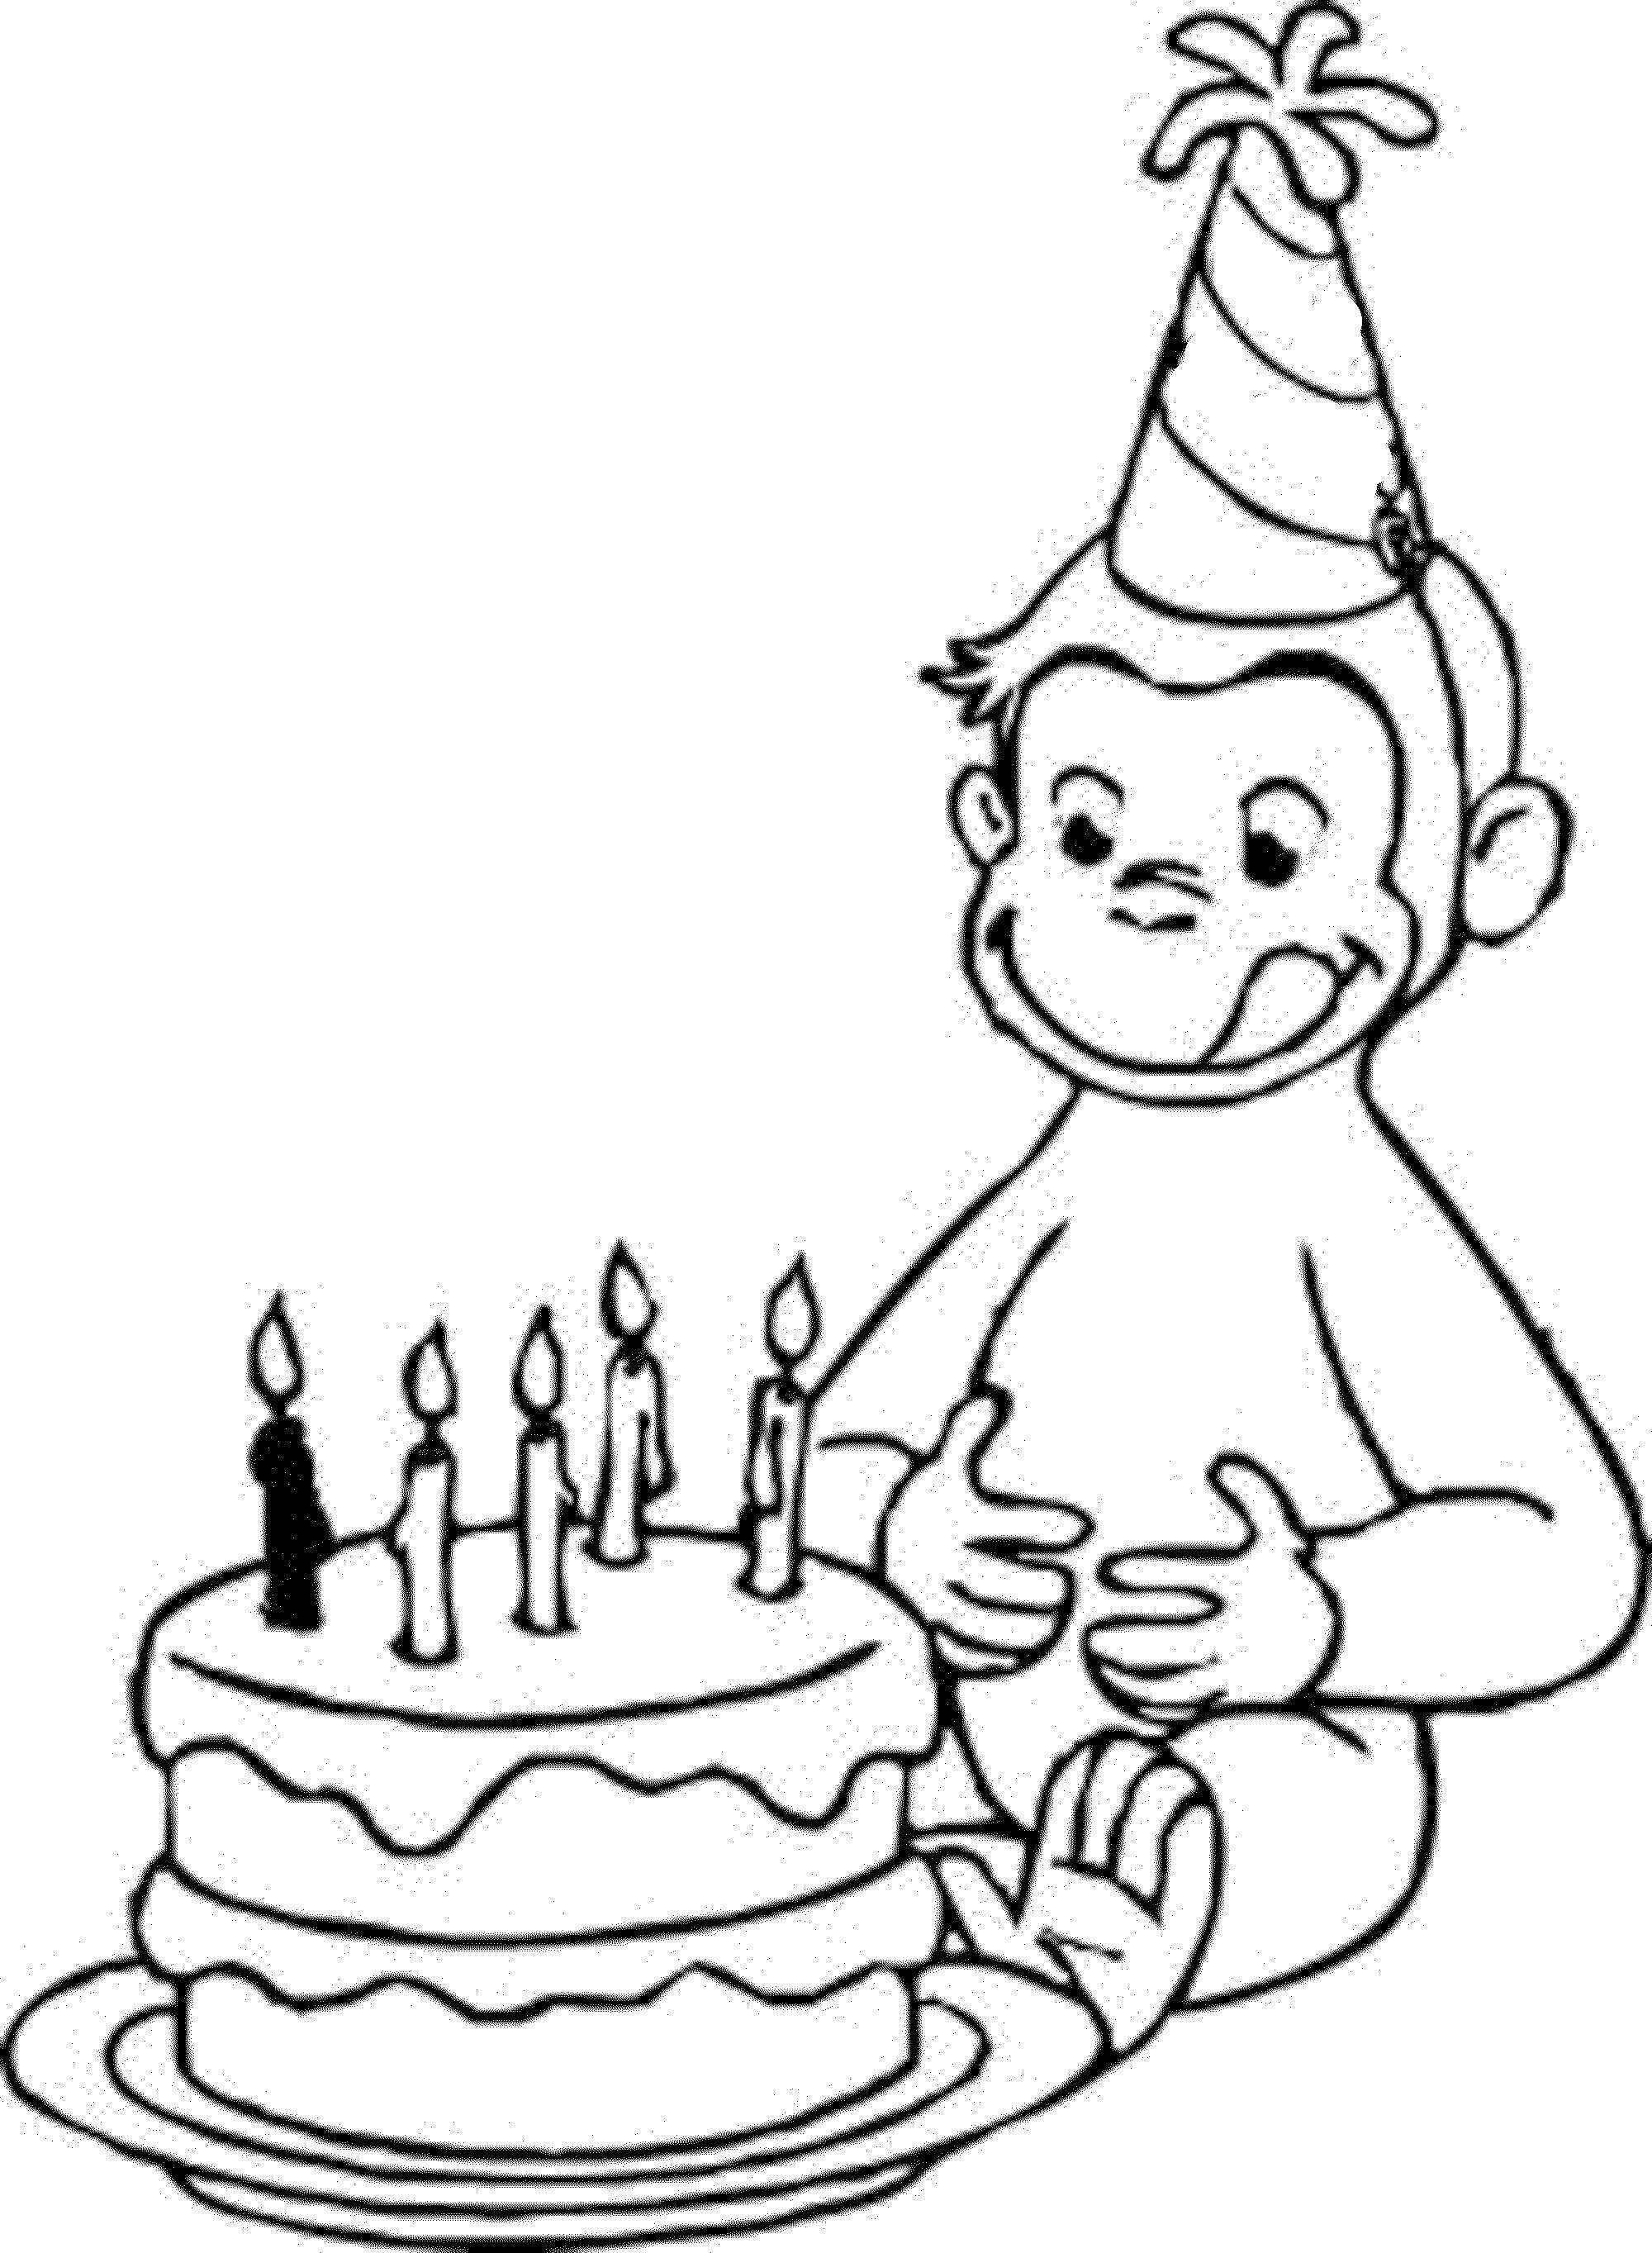 birthday coloring pages for boys ; curious-george-coloring-pages-printable-cartoon-coloring-pages